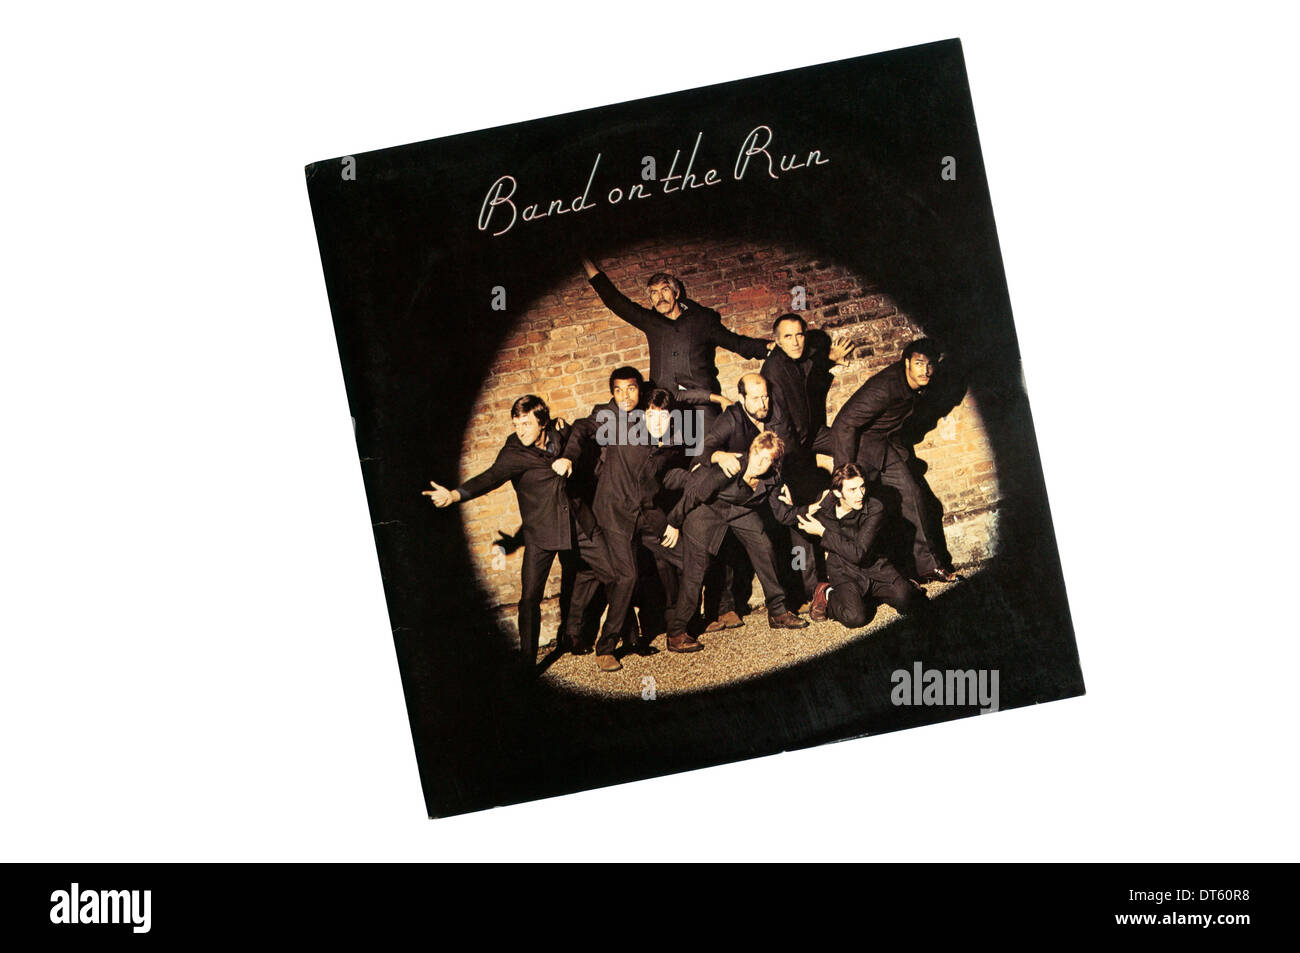 Band on the Run was Wings' third and most successful album, released in 1973. - Stock Image